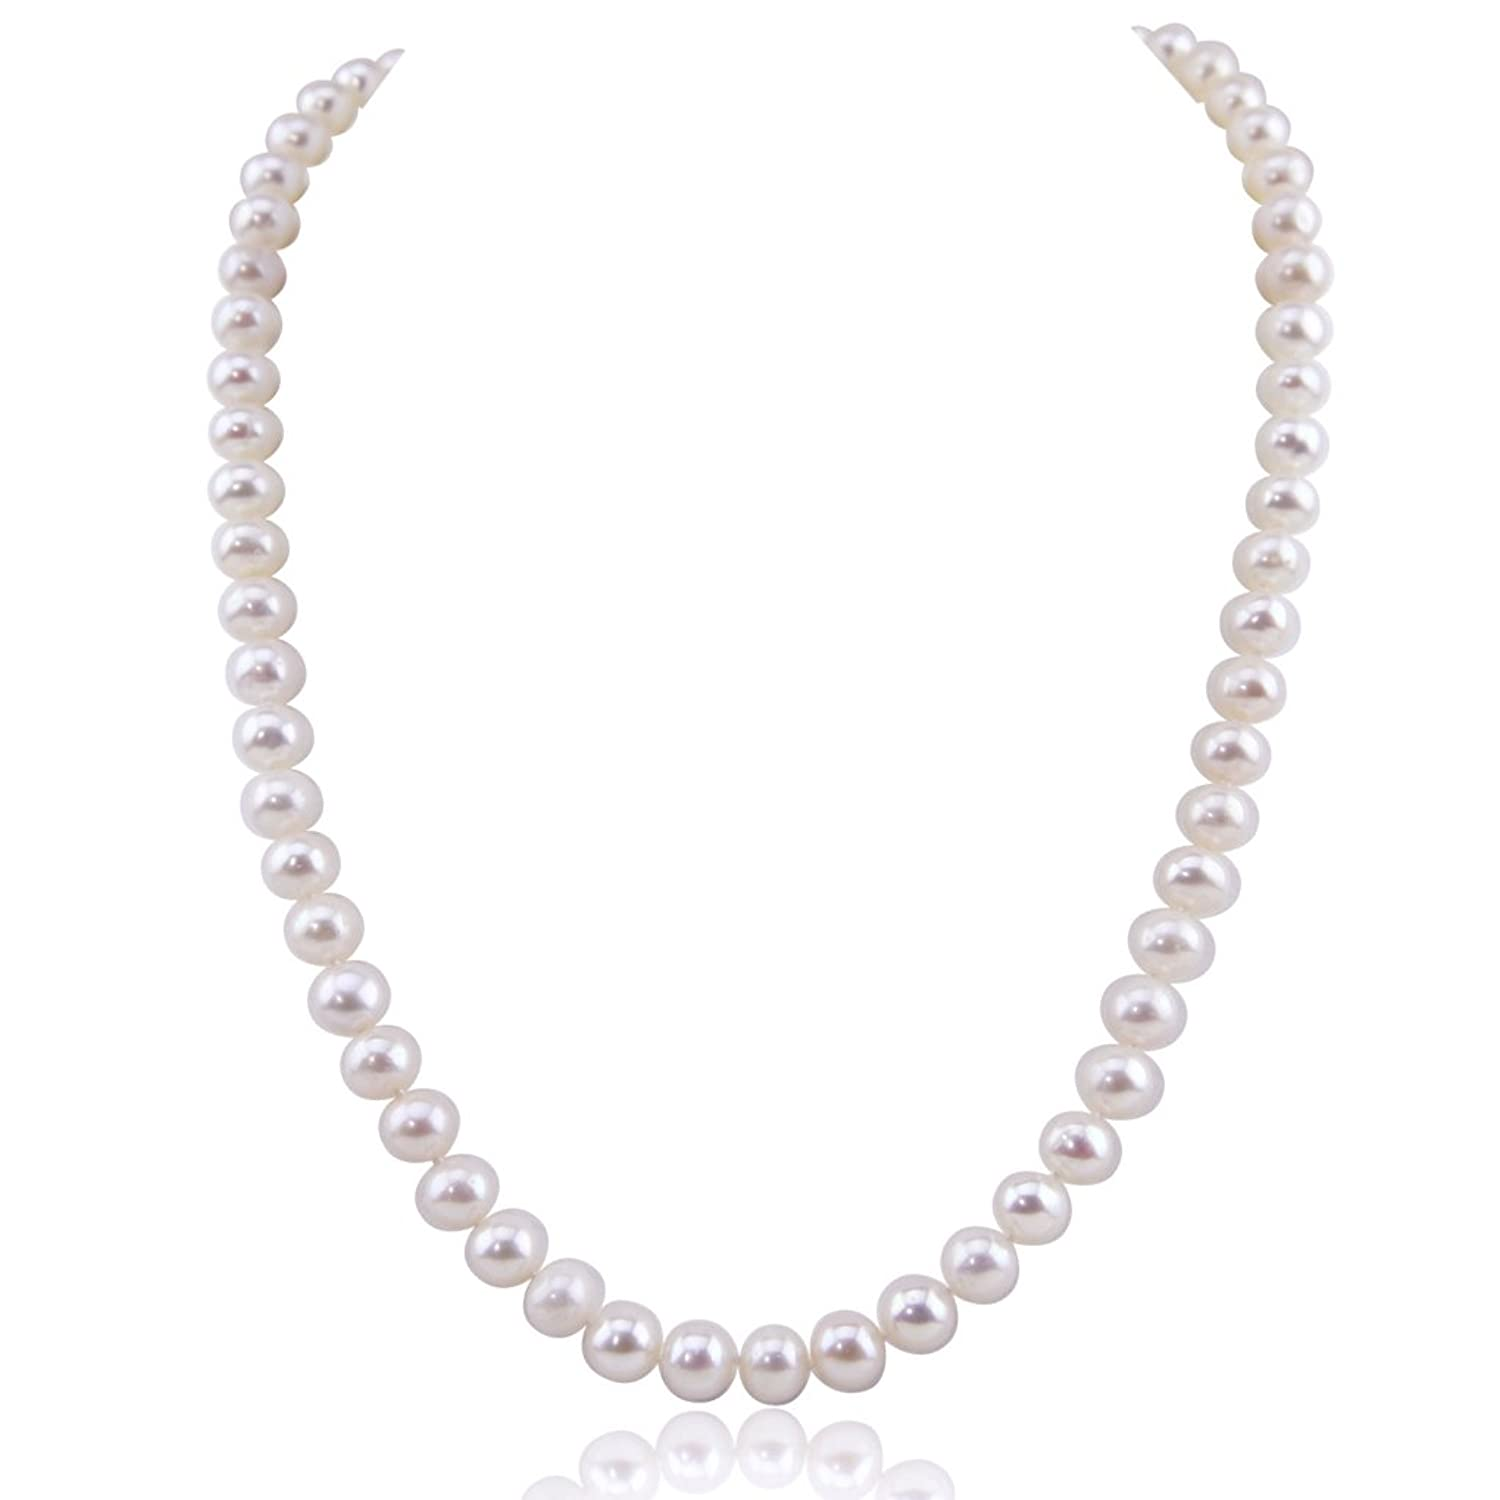 White Freshwater Cultured Pearl Necklace A Quality (7580mm), With Rhodium